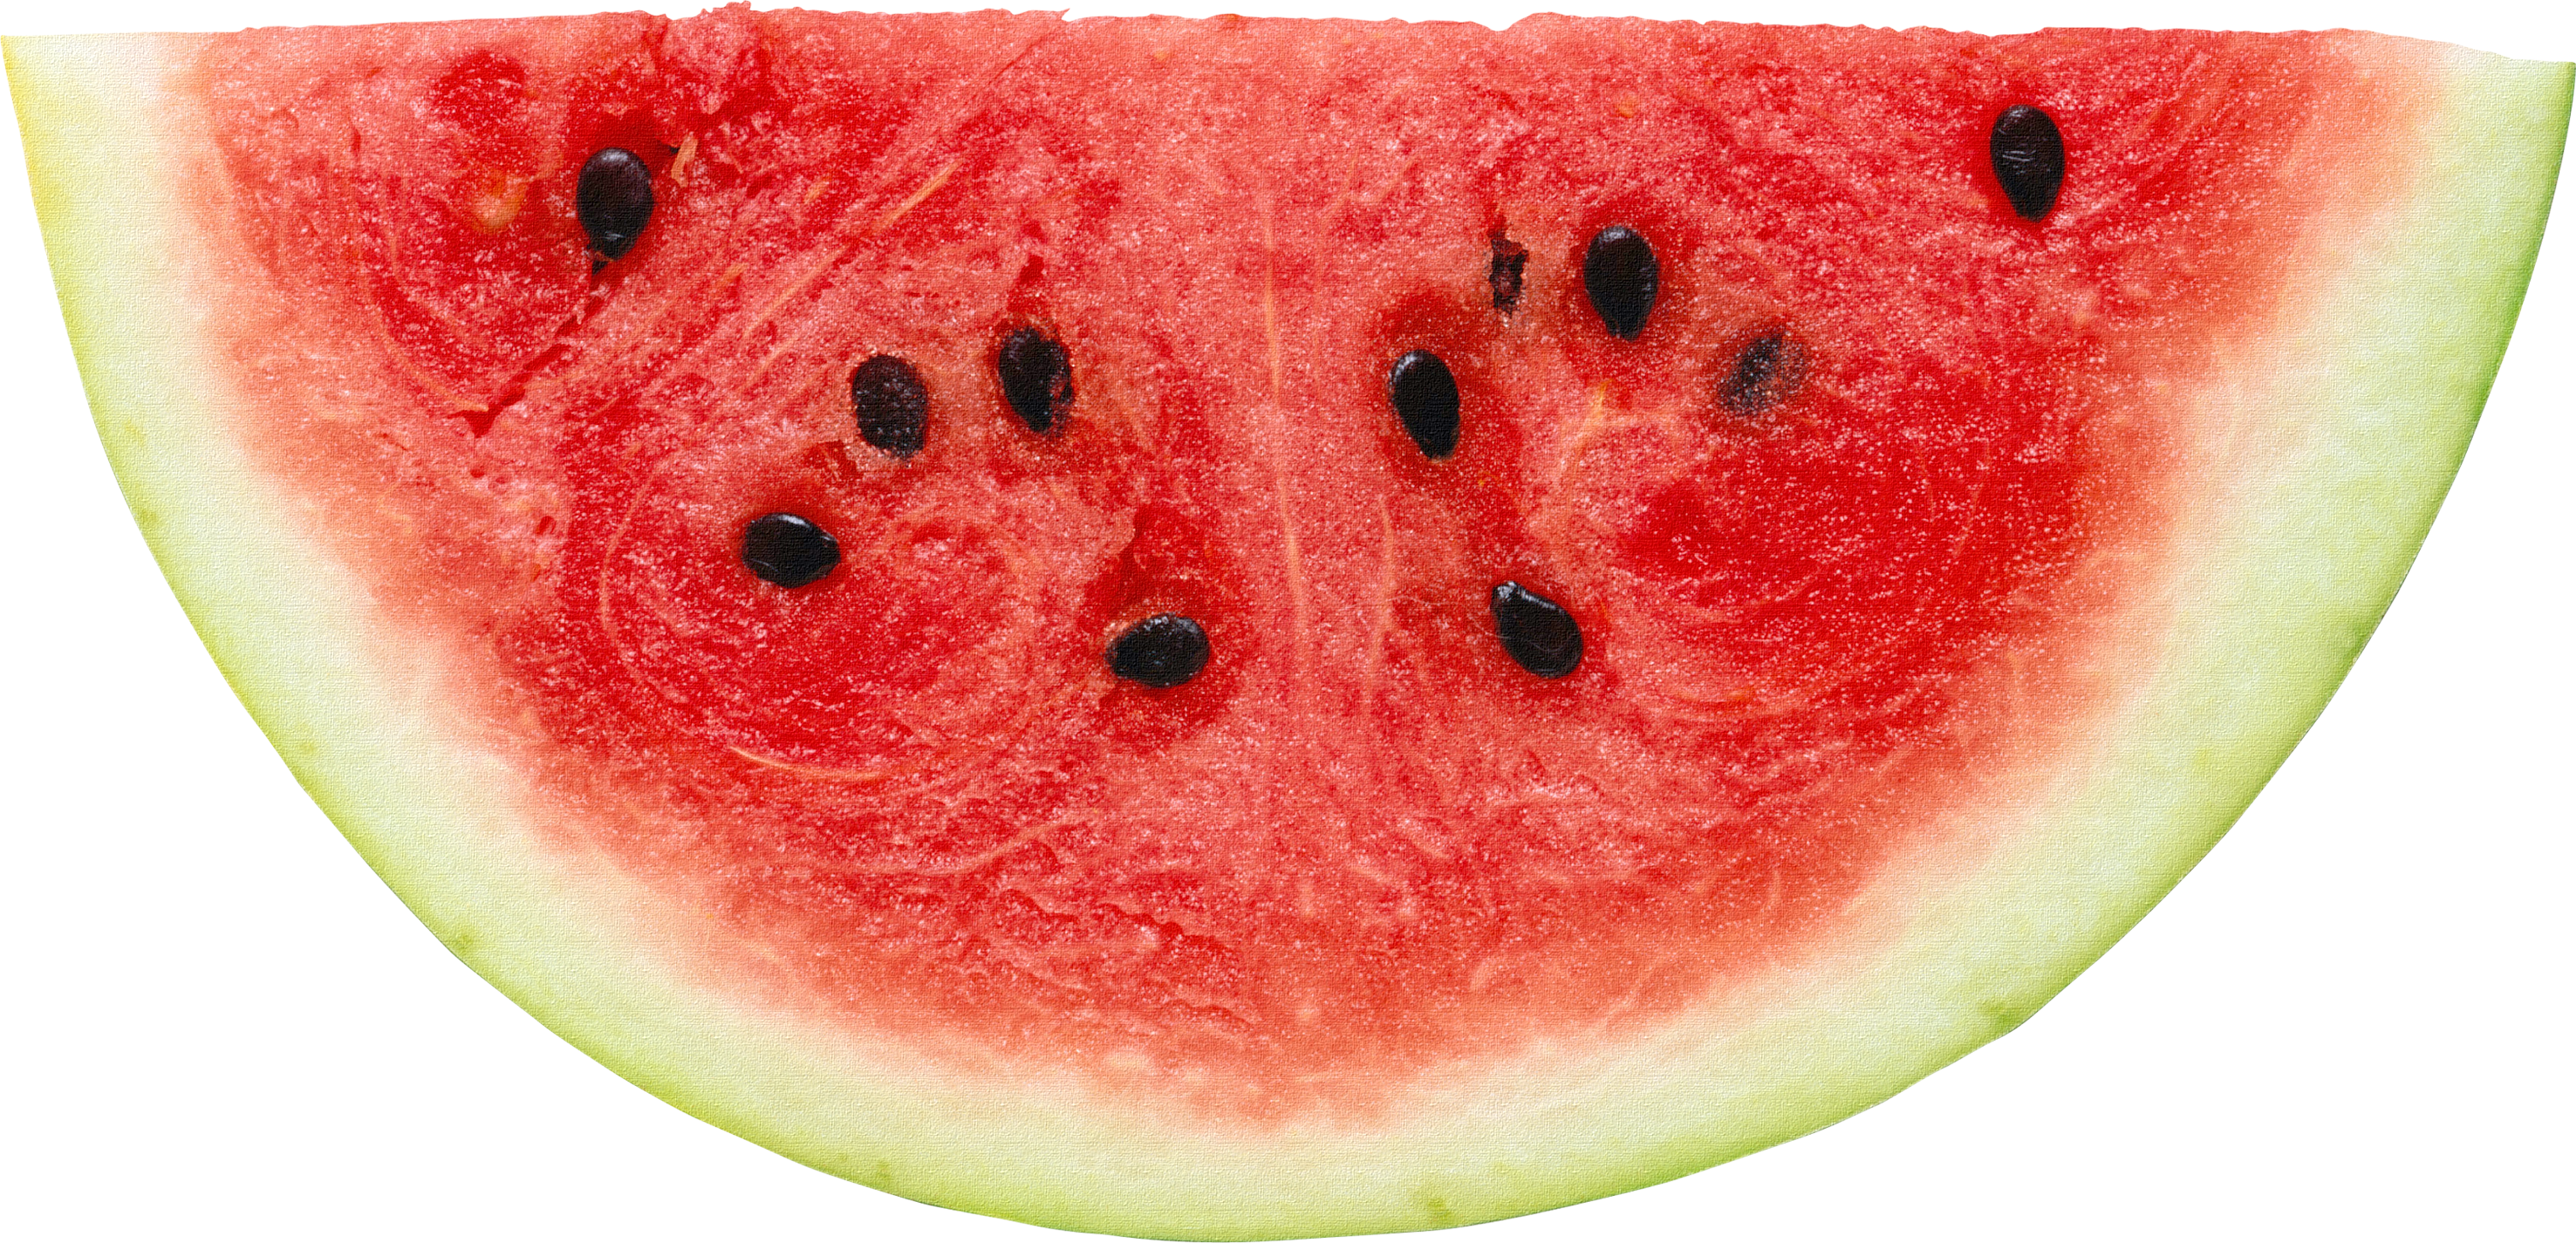 watermelon seeds png